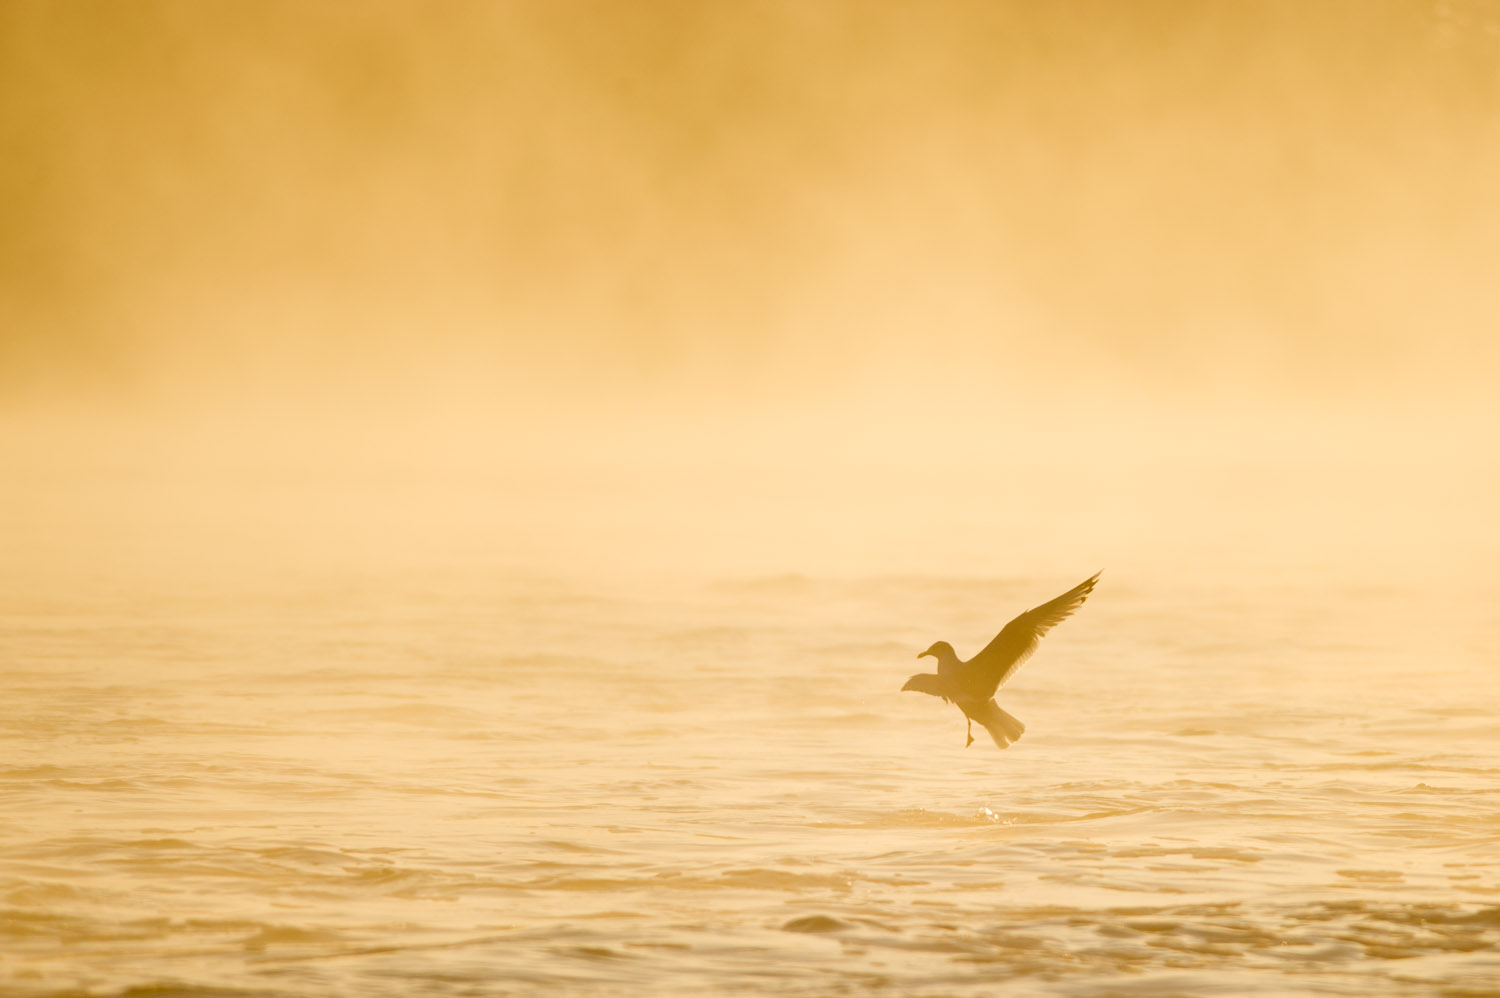 One of my favorite flight shots, this Ring-Billed Gull looked as though it was dancing on the water as the early morning sun lit up the fog at Conowingo Dam, MD  .